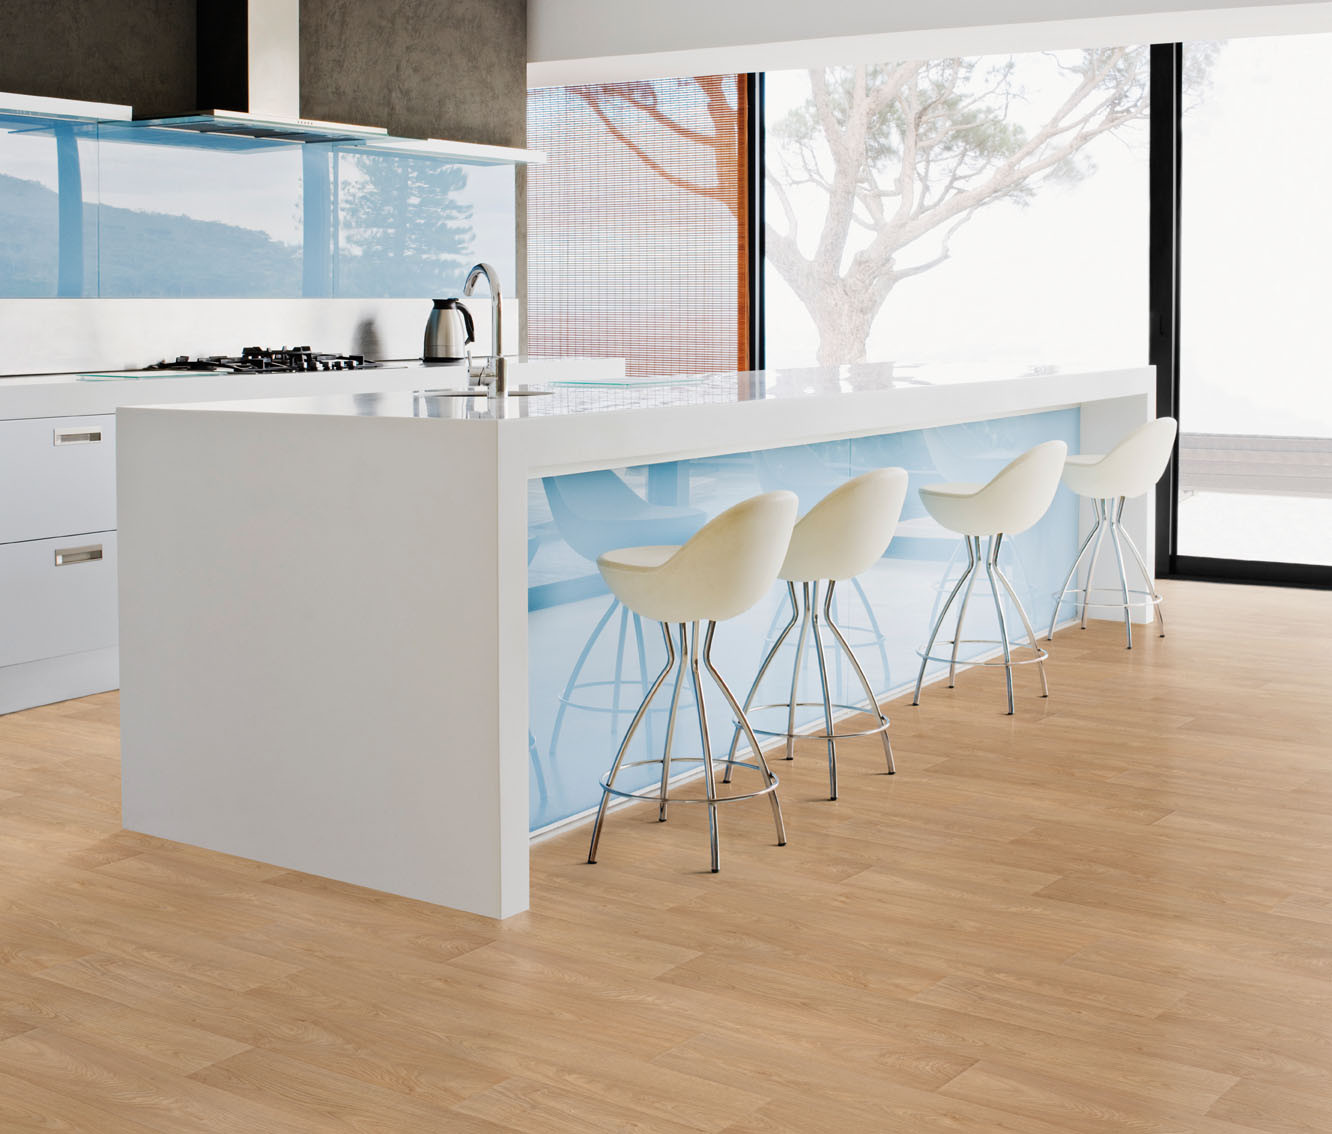 grey hardwood floors modern of remarkable modern kitchen concept ideas presenting white cabinetry regarding fascinating